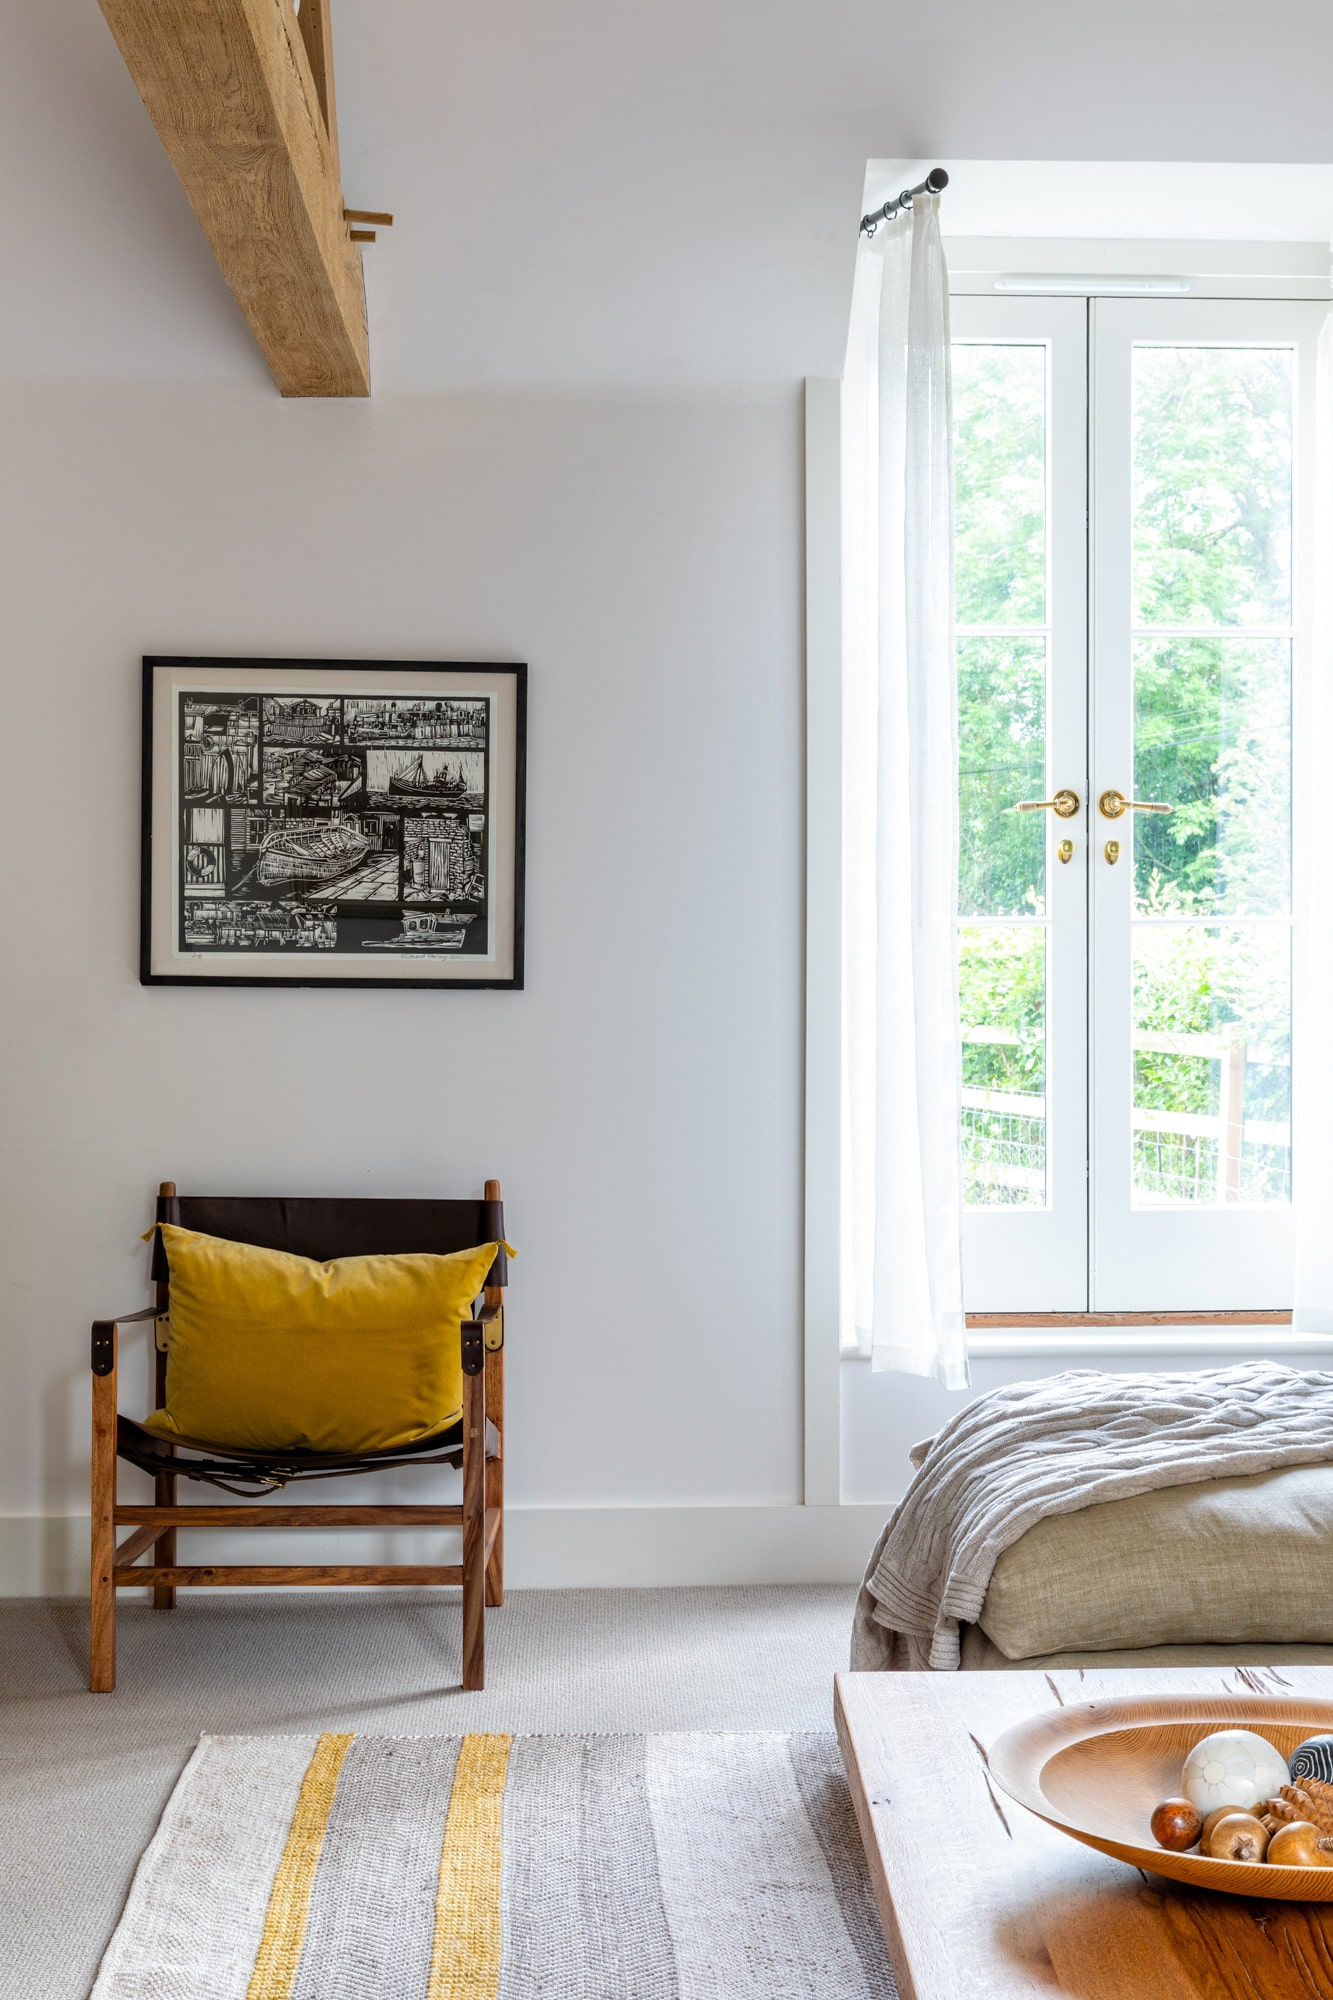 detail Interior design photo of a living room: a a chair with a yellow pillow next to a window with an above it, grey sofa